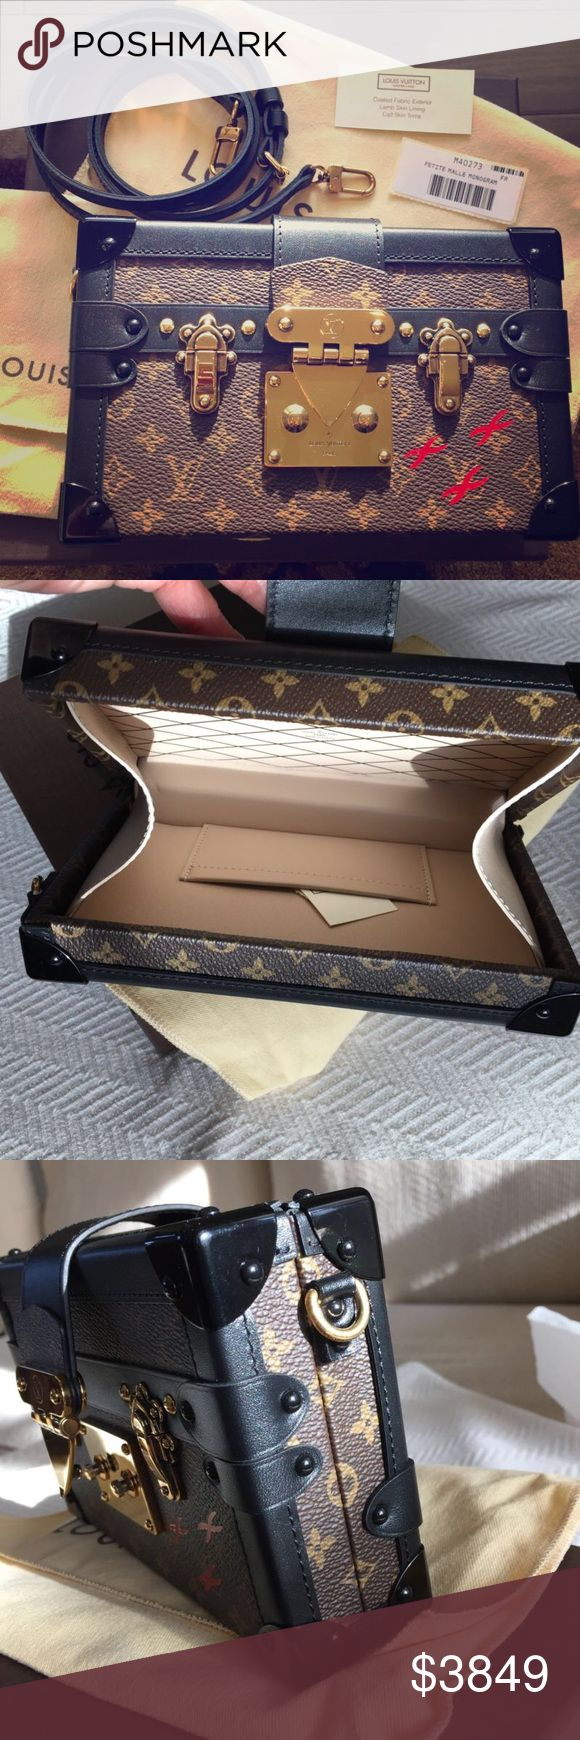 Louis Vuitton Petite Malle Monogram Clutch Bag Authentic Louis Vuitton Petite Malle  Monogram  Condition: 9.7 out of 10 with 10 being brand new  Comes with the box, dust bag, tags, ribbon, receipt, strap.   This was bought in December 2015  A truly iconic Louis Vuitton piece  Eye catching clutch   It can be used as a cross body bag  Very fashionable and can be used both day and night  A statement piece of luxury   I accept reasonable offers  This is priced very reasonably  Retails $5,200…